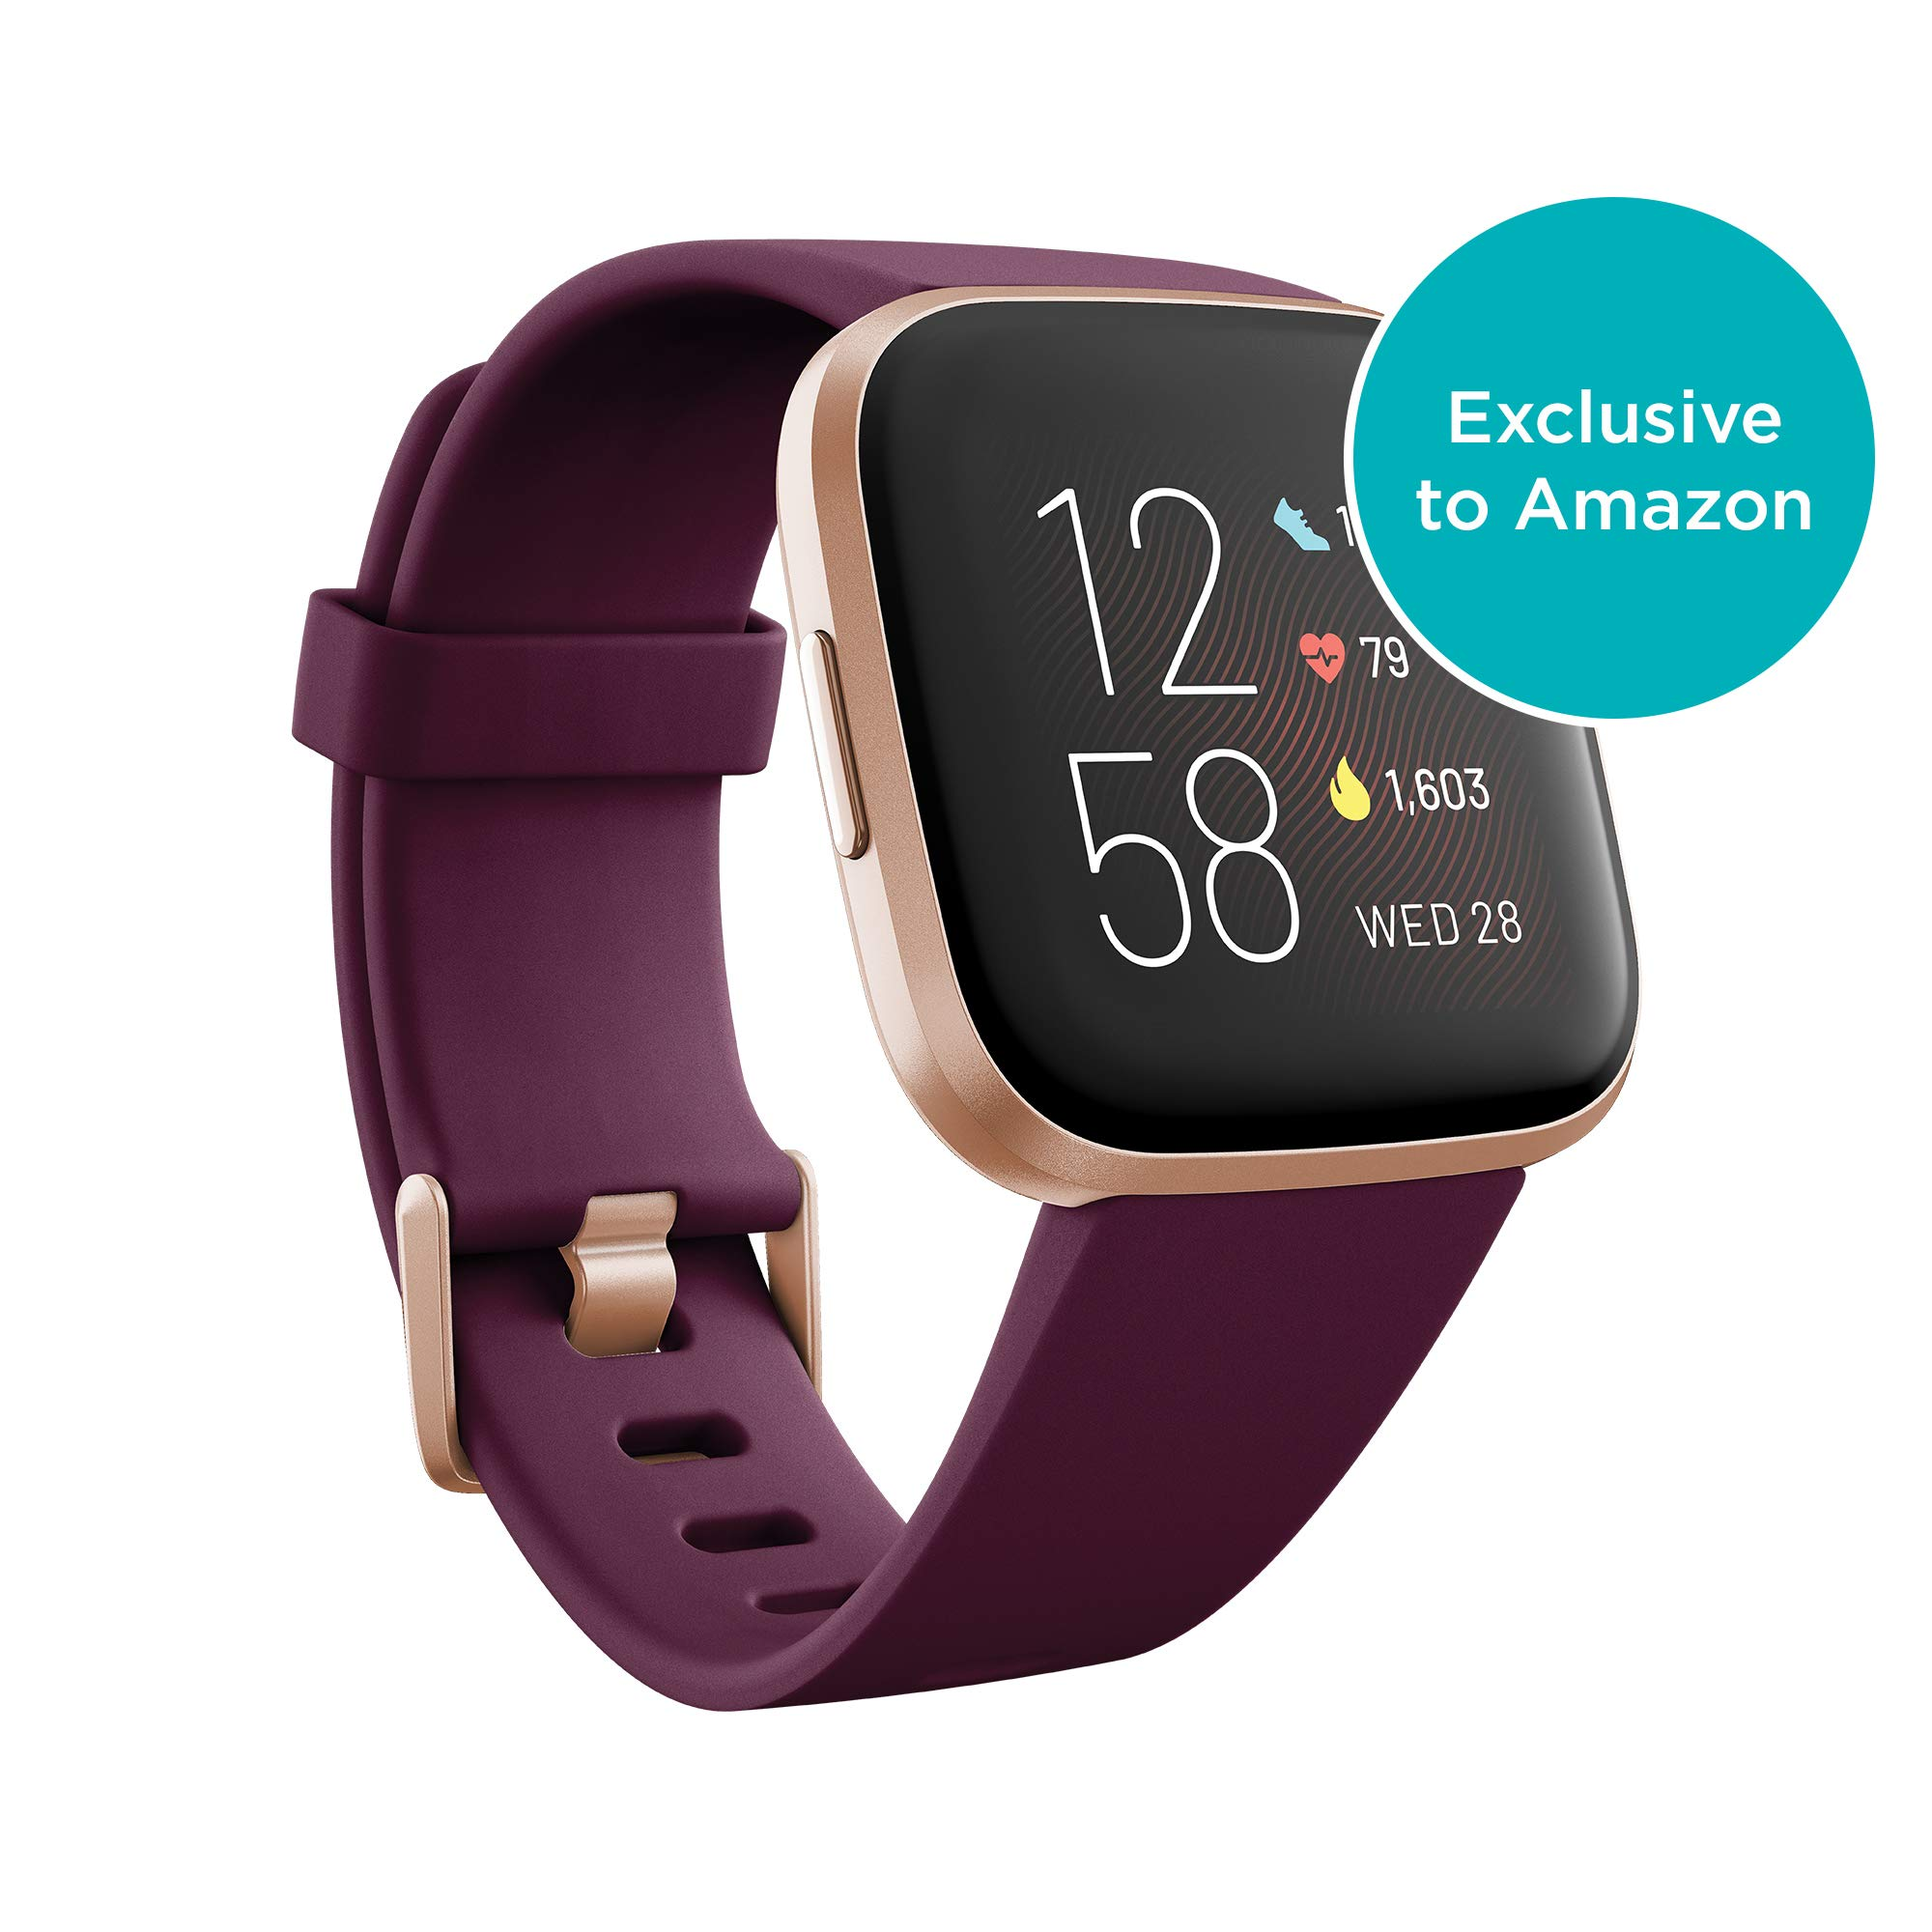 Fitbit Versa 2 Health & Fitness Smartwatch with Heart Rate, Music, Alexa Built-in, Sleep & Swim Tracking, Bordeaux/Copper Rose, One Size (S & L Bands Included) by Fitbit